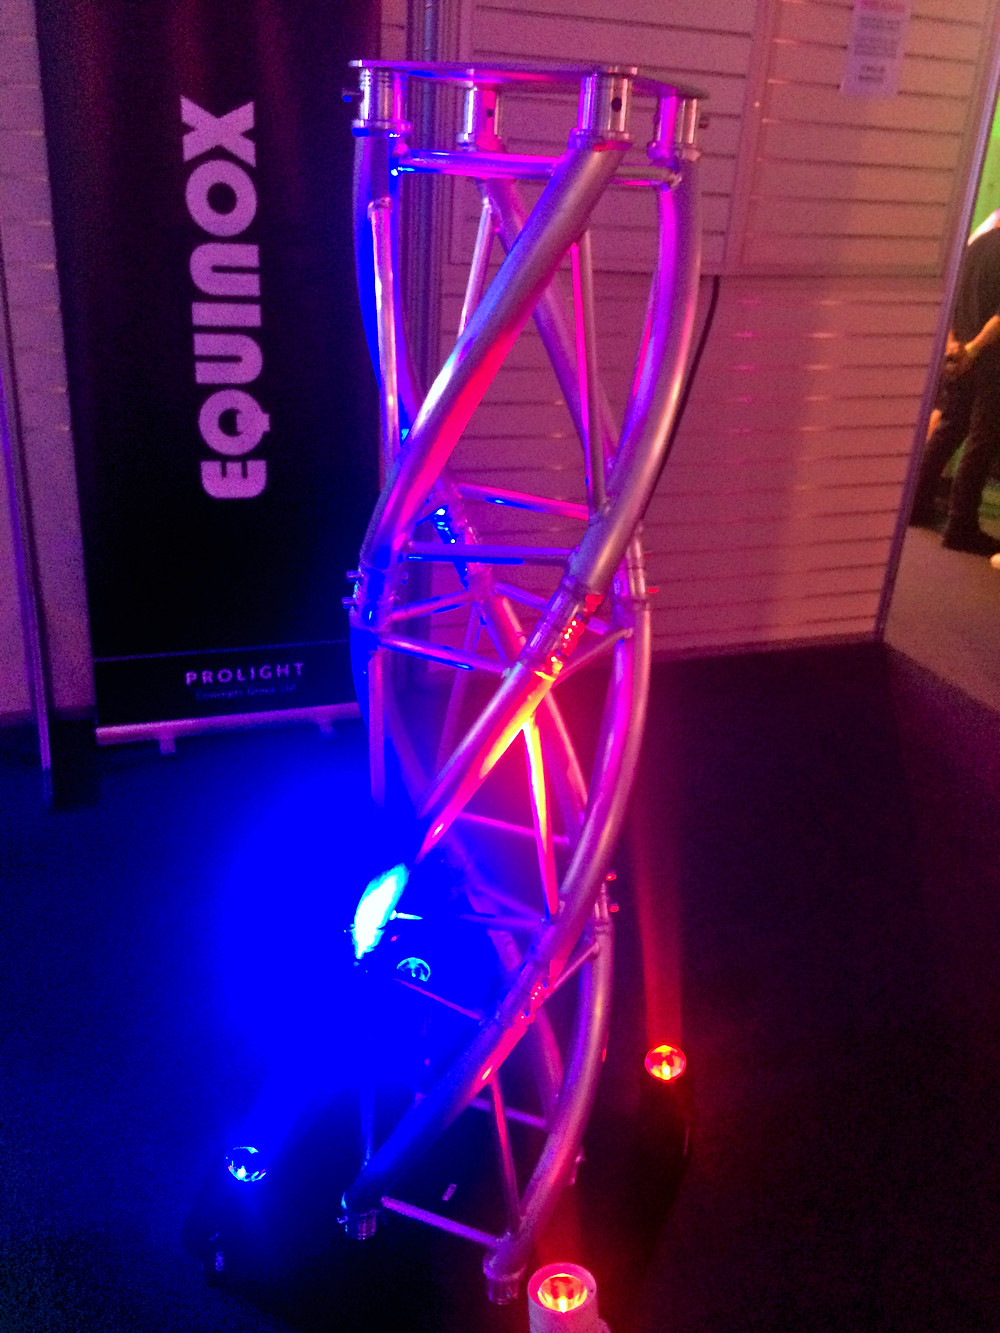 A Very Well lit Twisted truss from Equinox displaying at BPM 2019